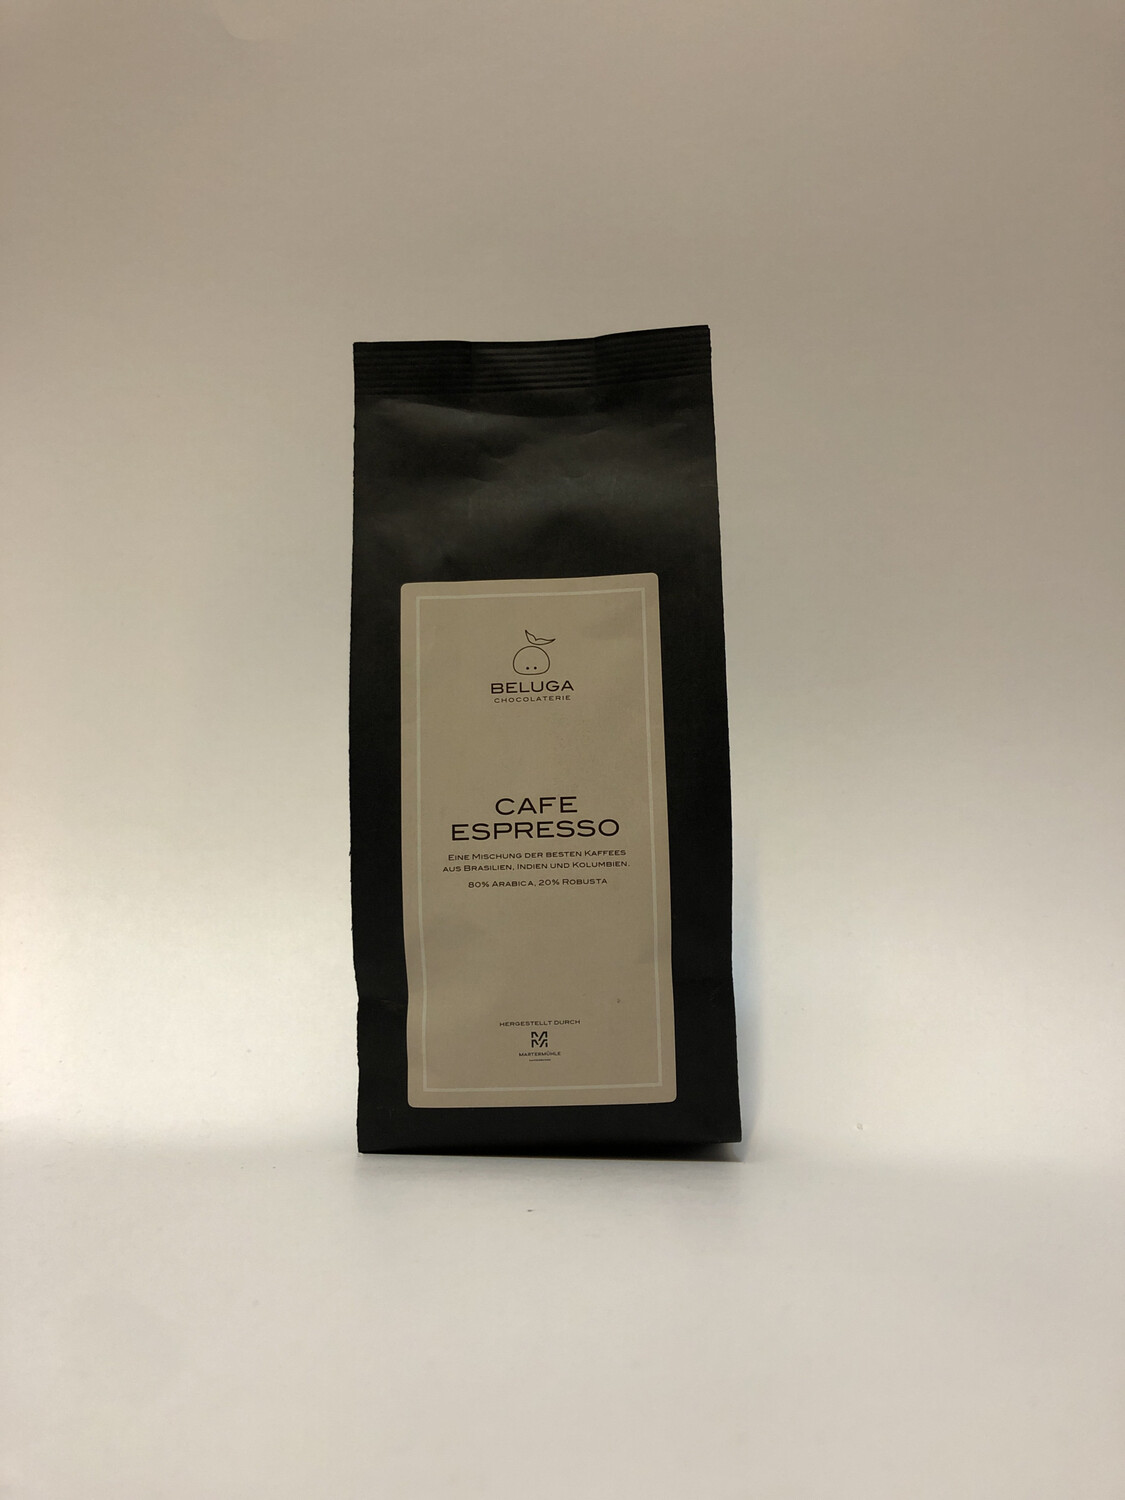 Espresso 250 g, whole bean